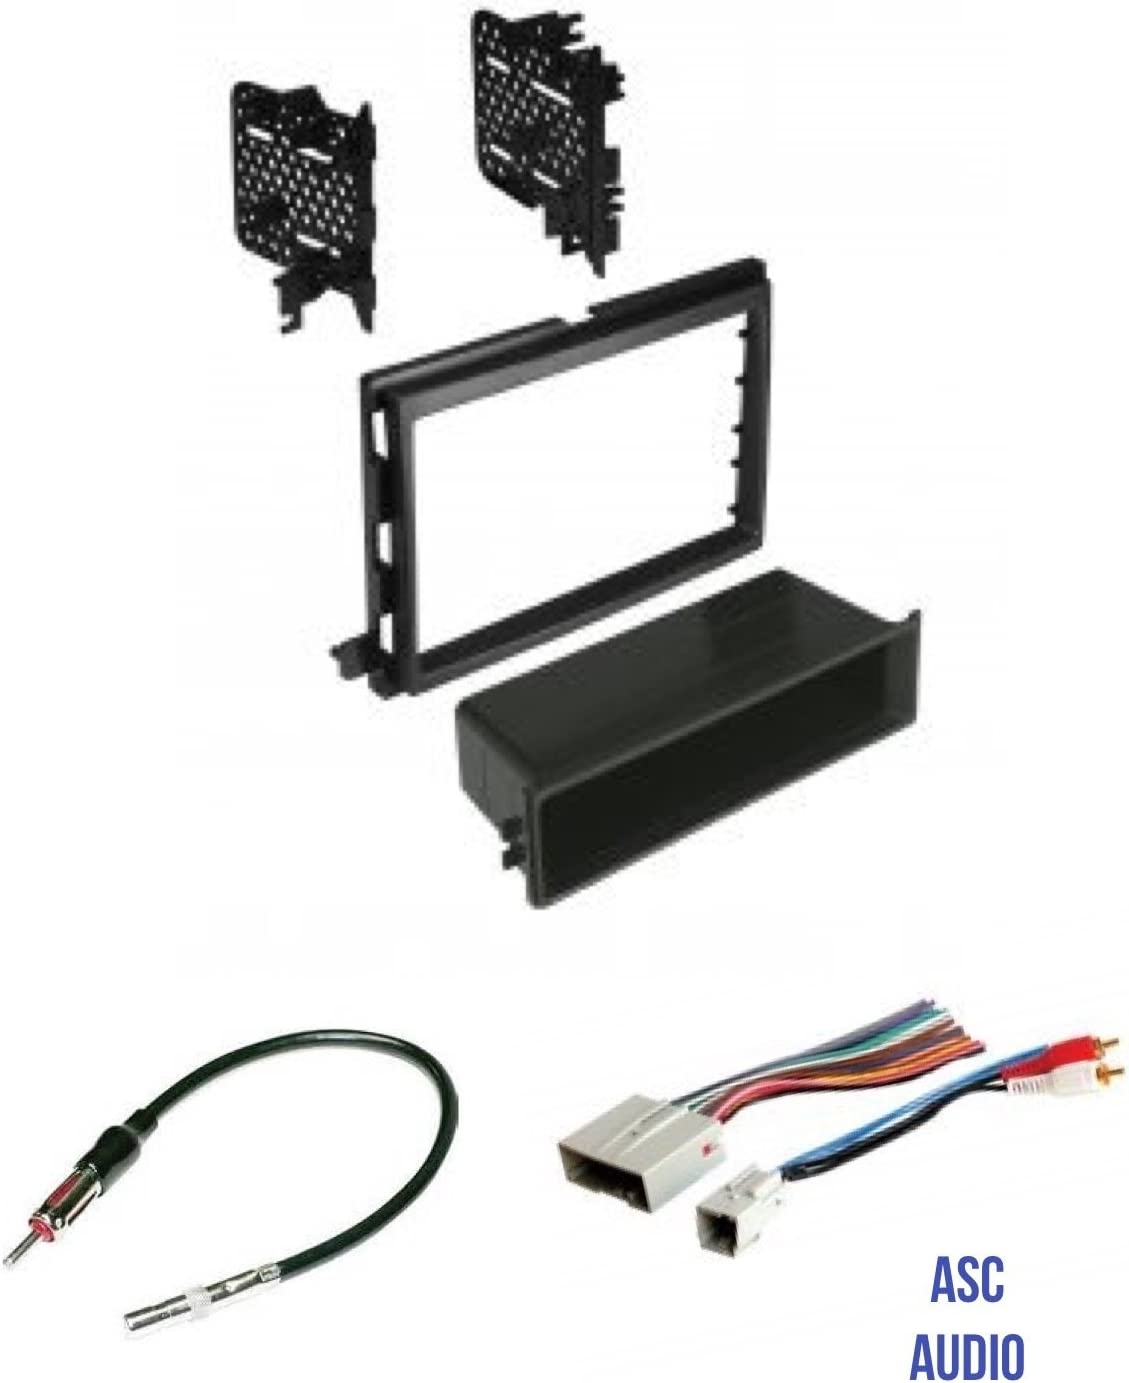 Amazon.com: ASC Audio Car Stereo Radio Install Dash Kit, Wire Harness, and  Antenna Adapter to Install an Aftermarket Radio for some Ford Lincoln  Mercury Vehicles: Car ElectronicsAmazon.com